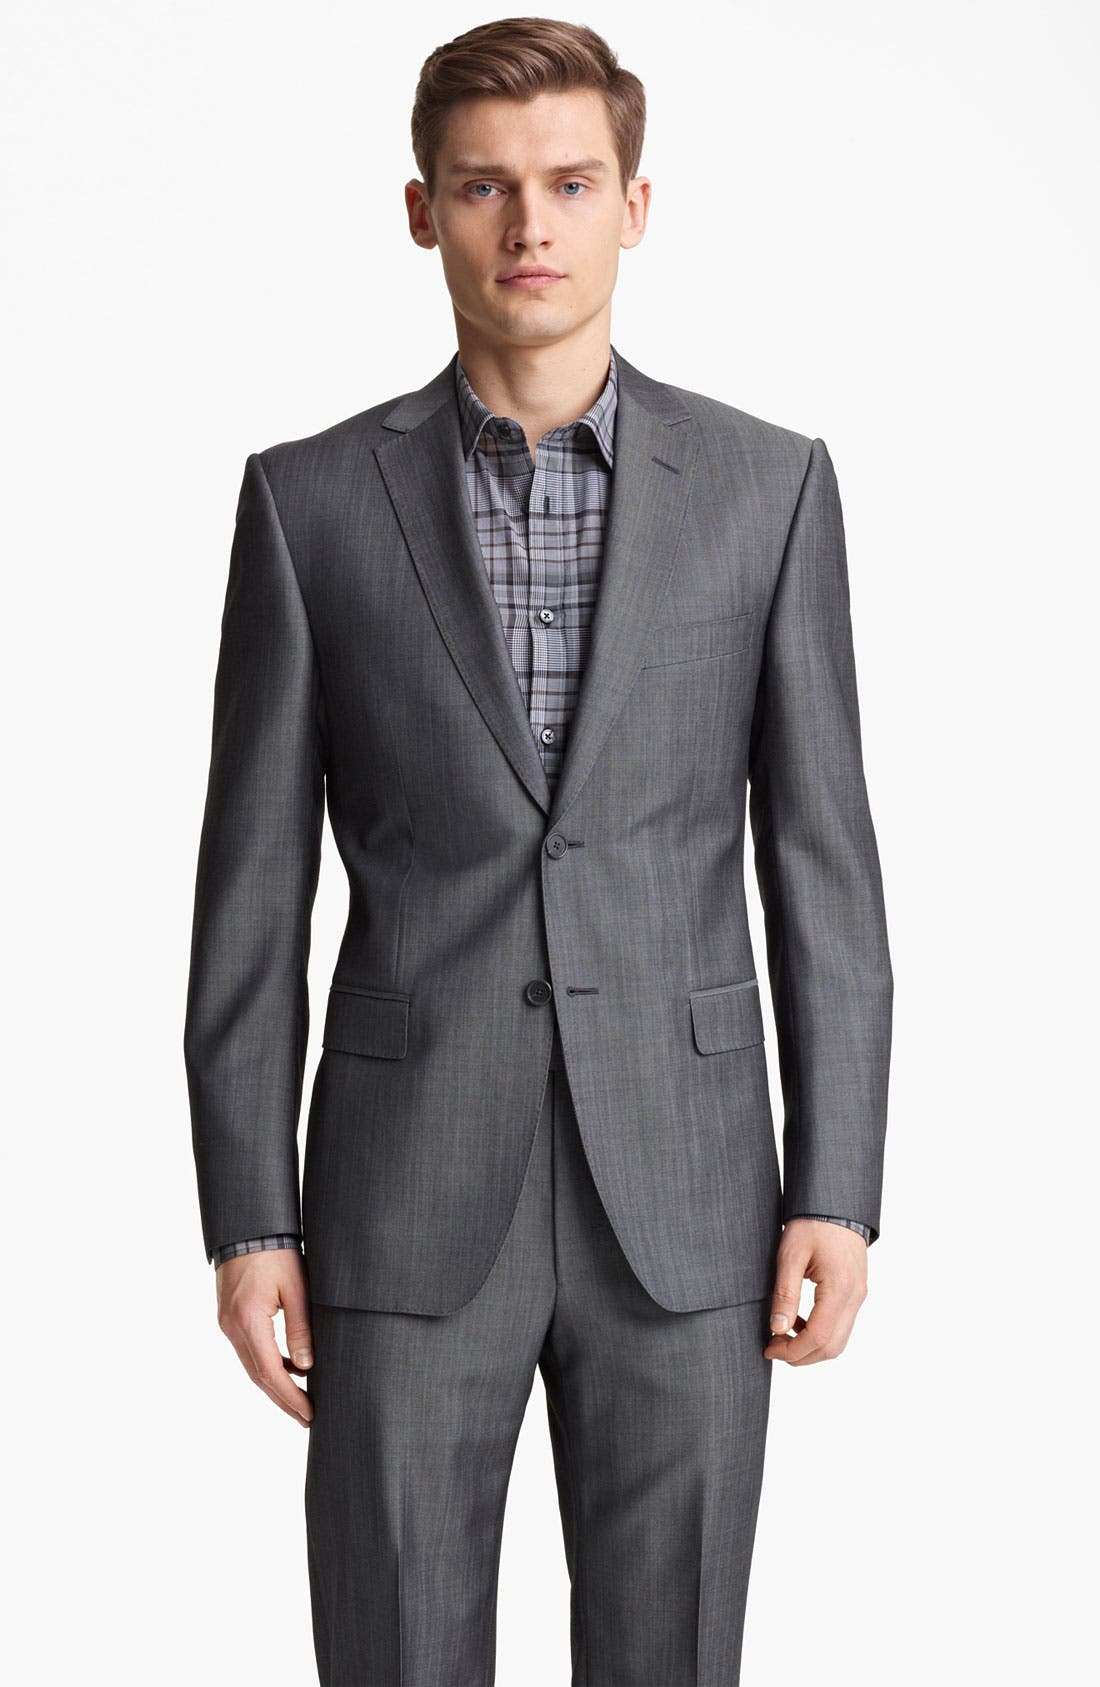 Alternate Image 1 Selected - Z Zegna Trim Fit Wool Blend Suit